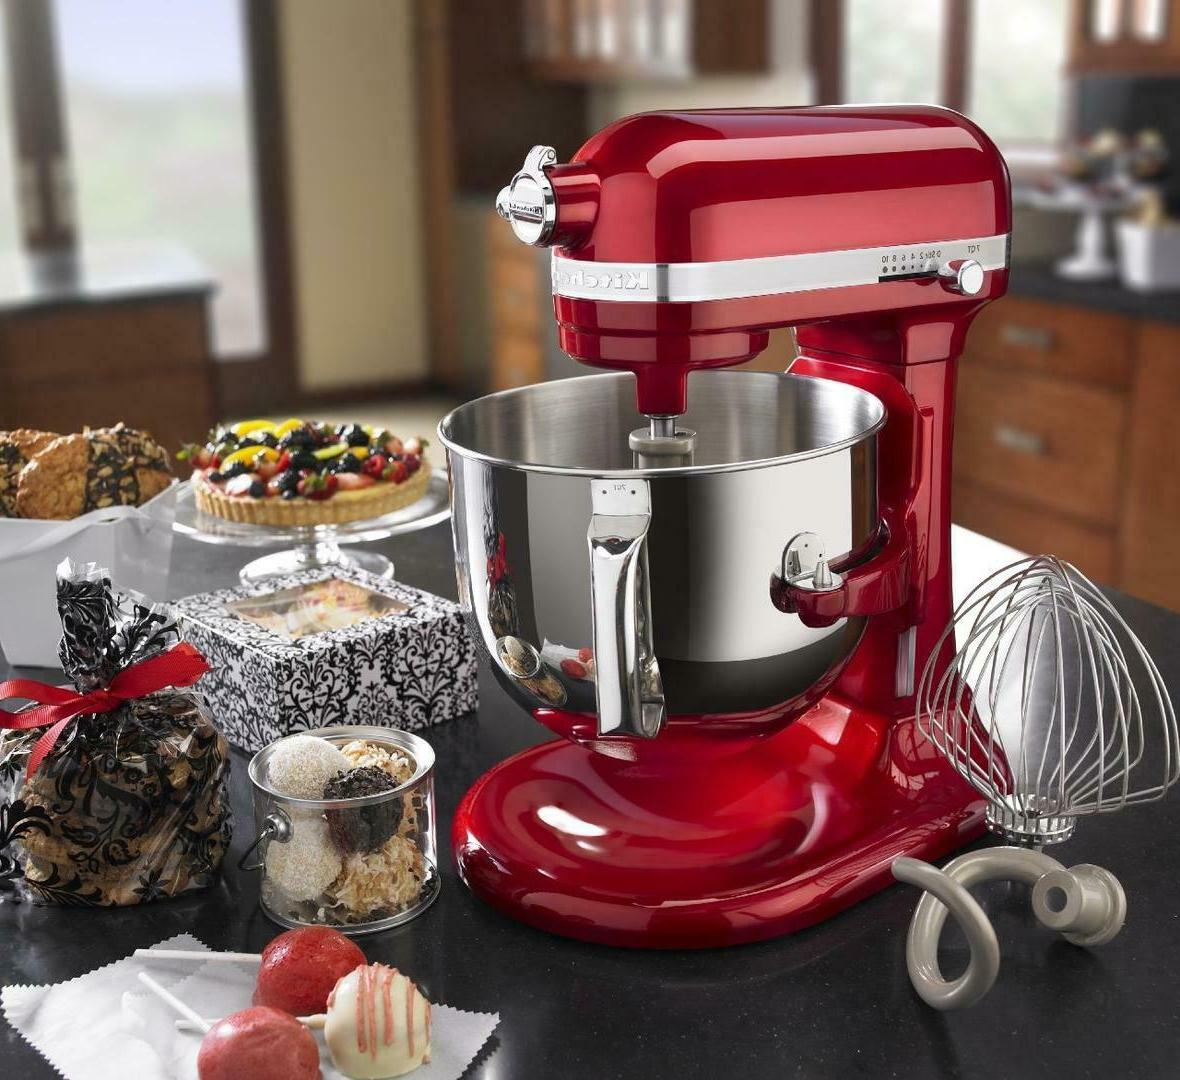 KitchenAid KSM7586PCA 7 Bowl-Lift Mixer, Red